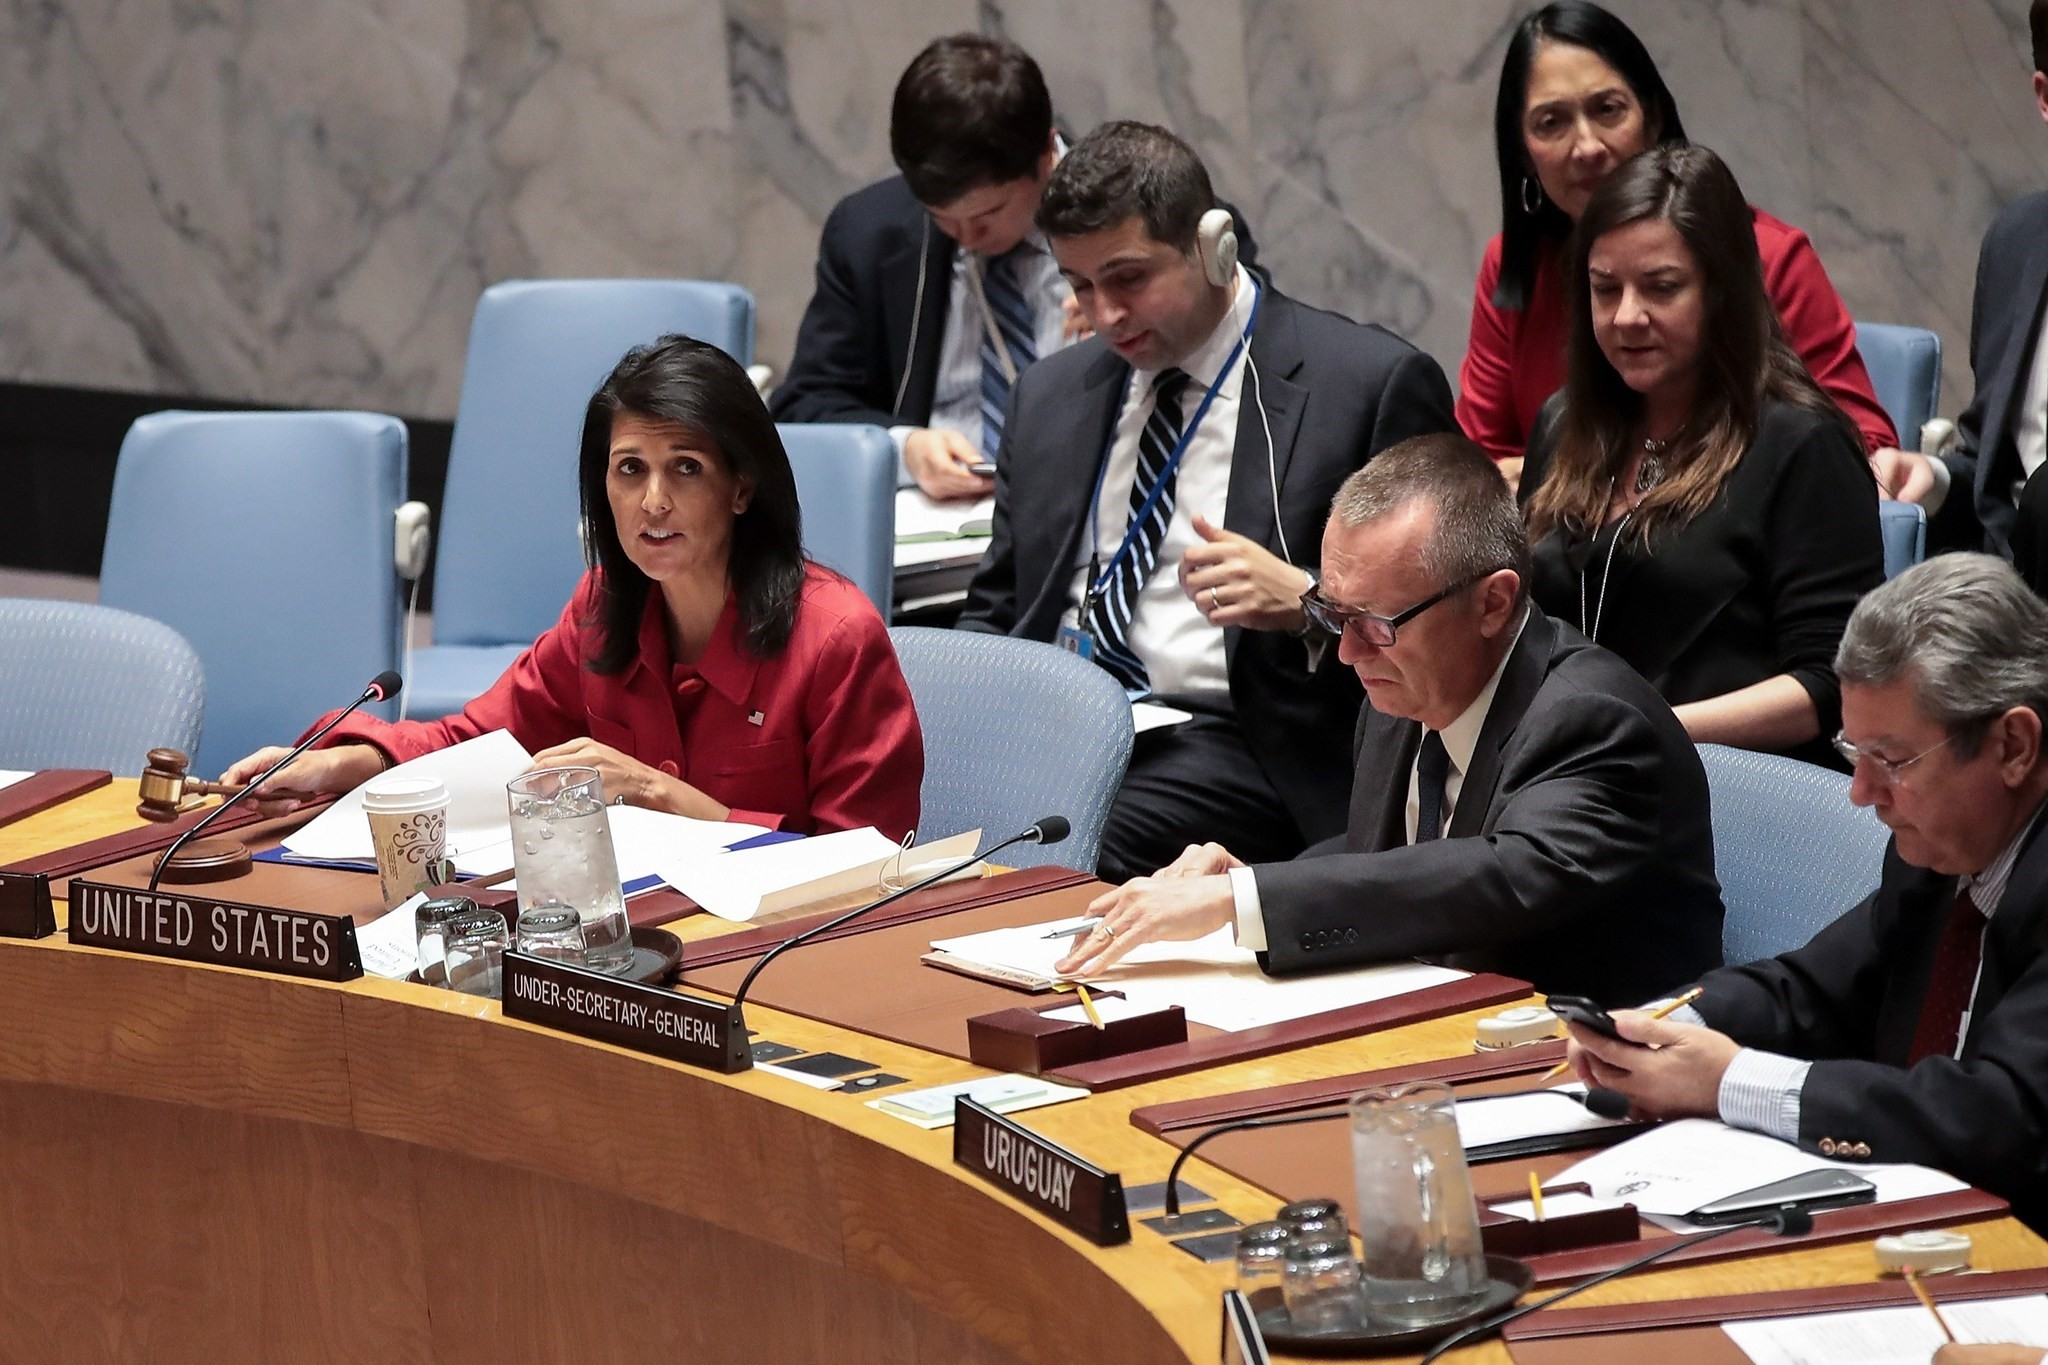 U.S. Ambassador to the United Nations Nikki Haley chairs a meeting of the United Nations Security Council concerning the situation in Syria. (AFP Photo)